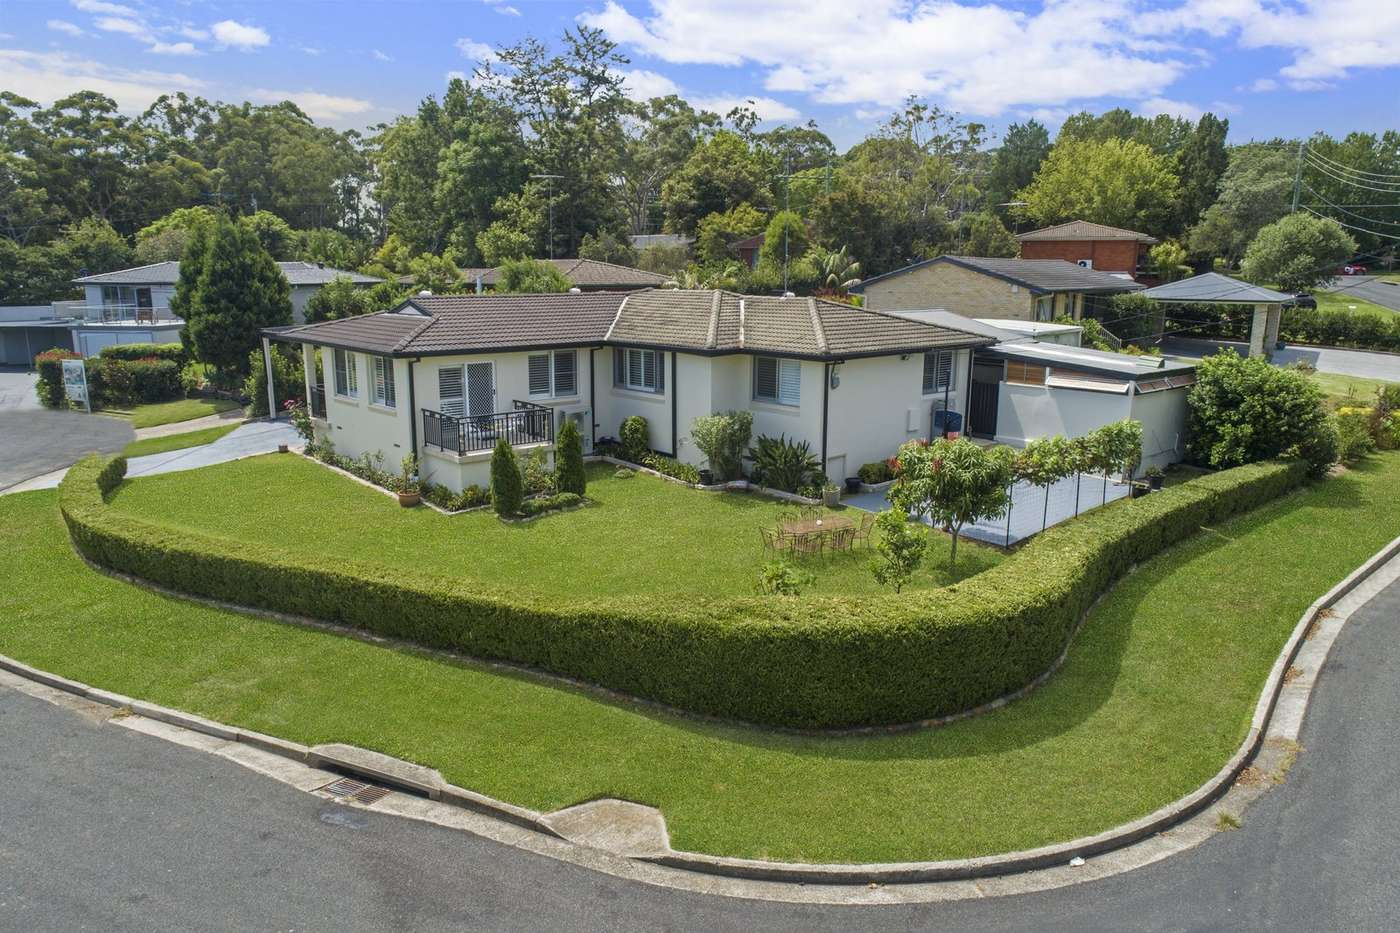 Main view of Homely house listing, 1 Bettina Place, Dural, NSW 2158